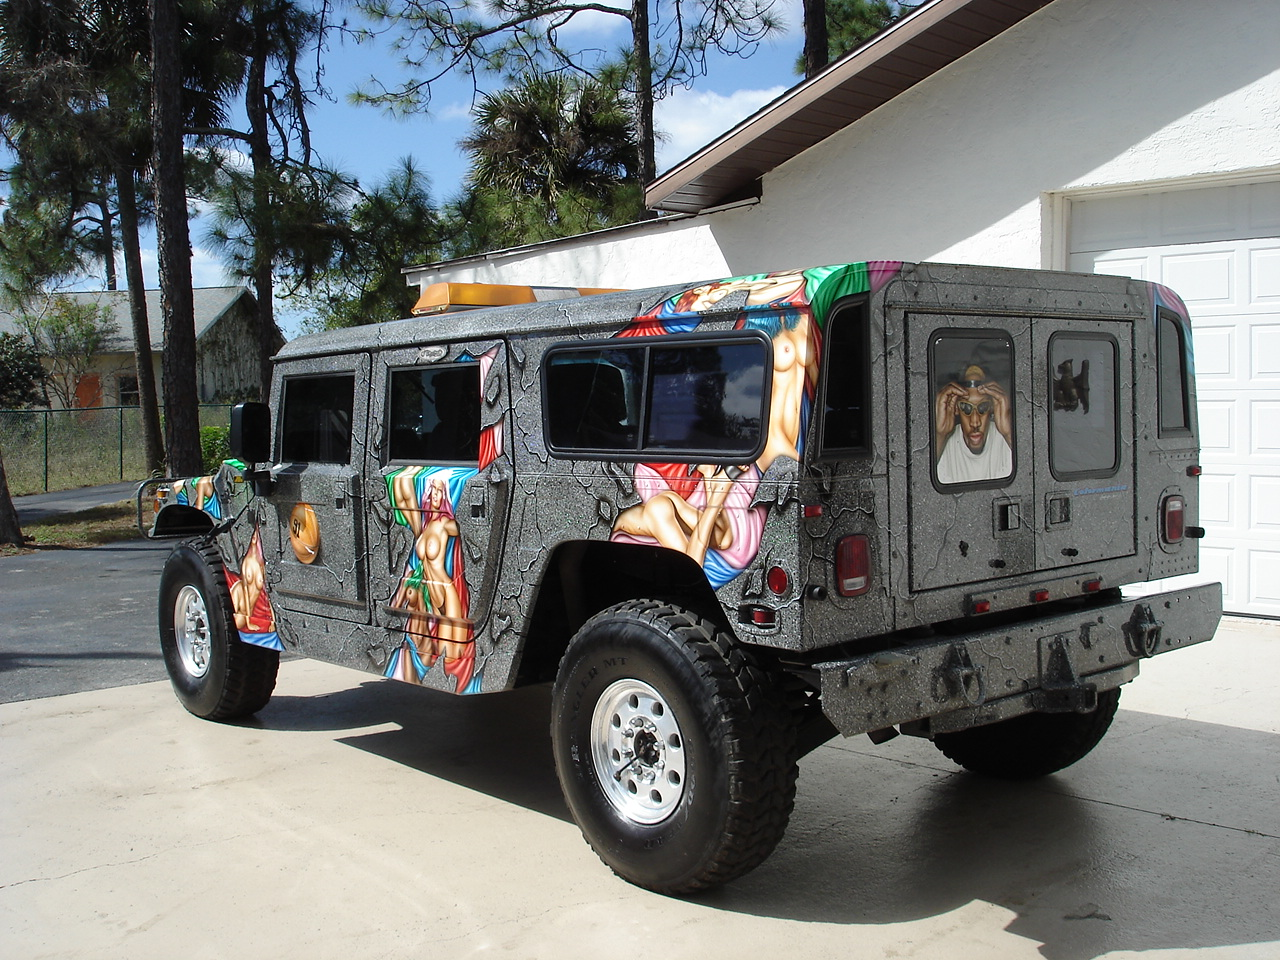 Dennis Rodman's Hummer H1 Is Up For Sale, But Will Kim Jong-un Buy